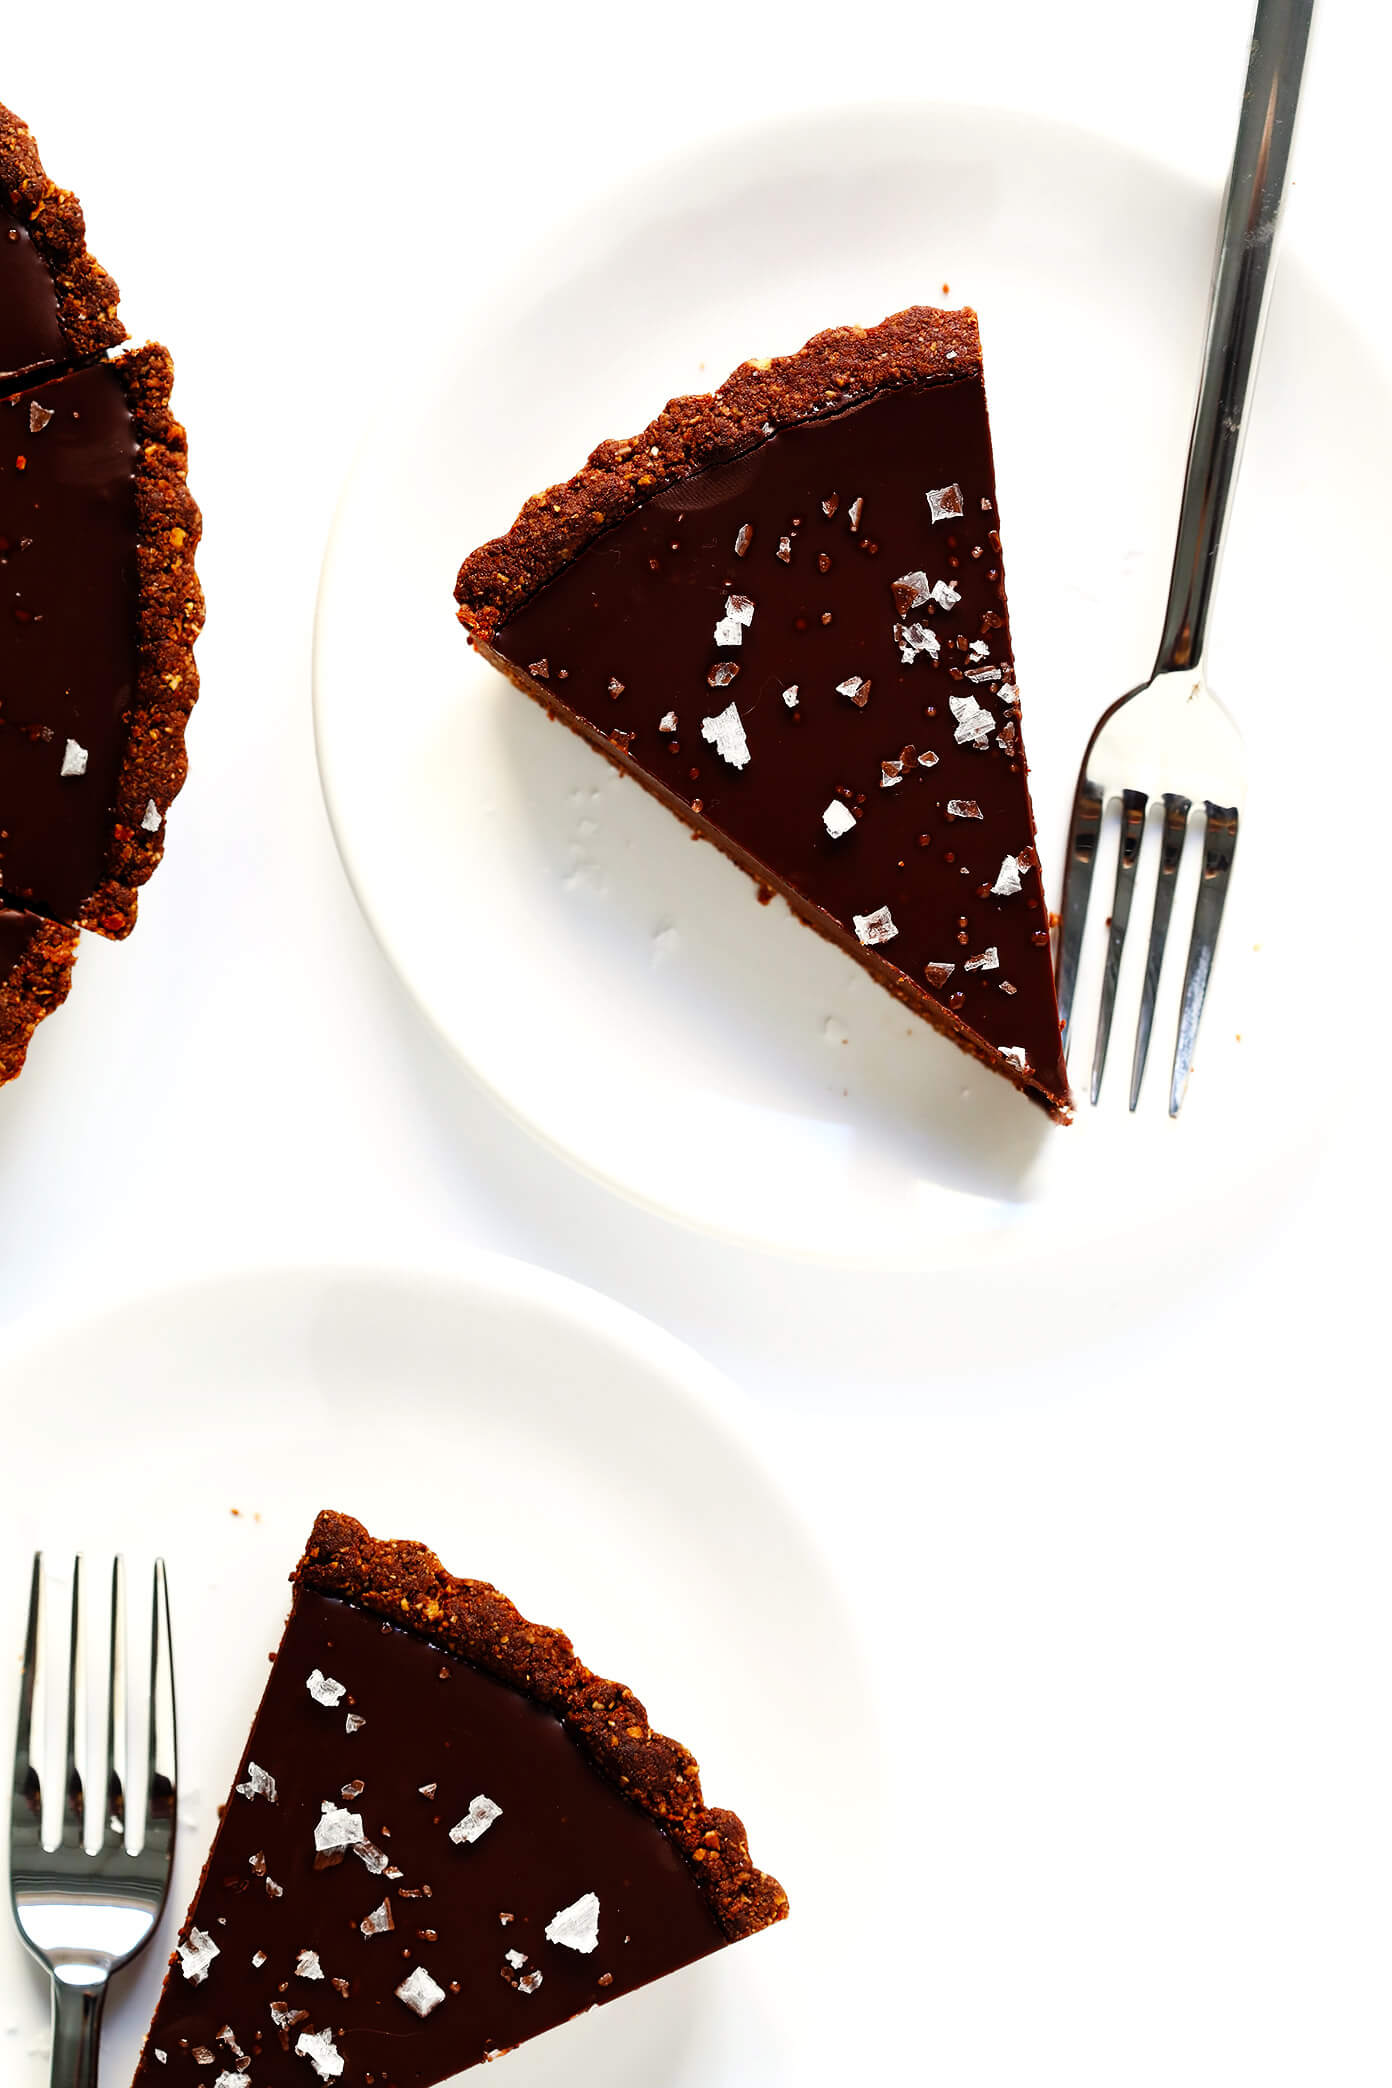 Gluten-Free Chocolate Tart (Vegan)